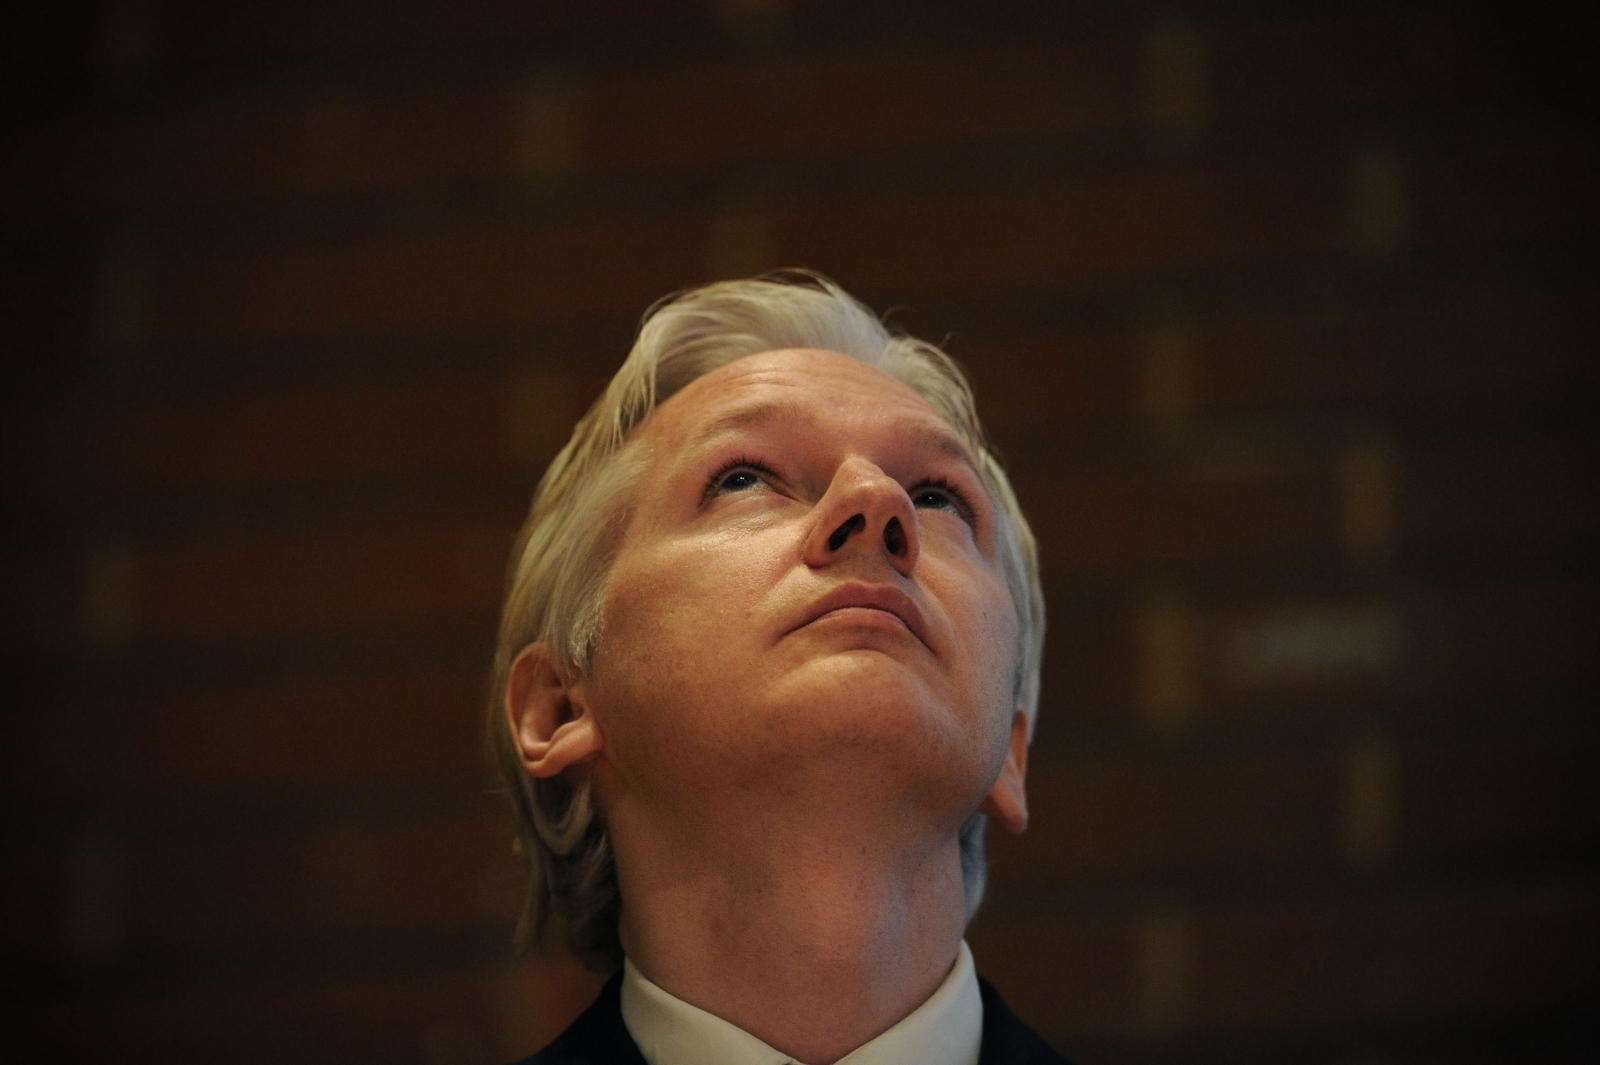 Julian Assange denied diplomatic status by British government after Ecuador request